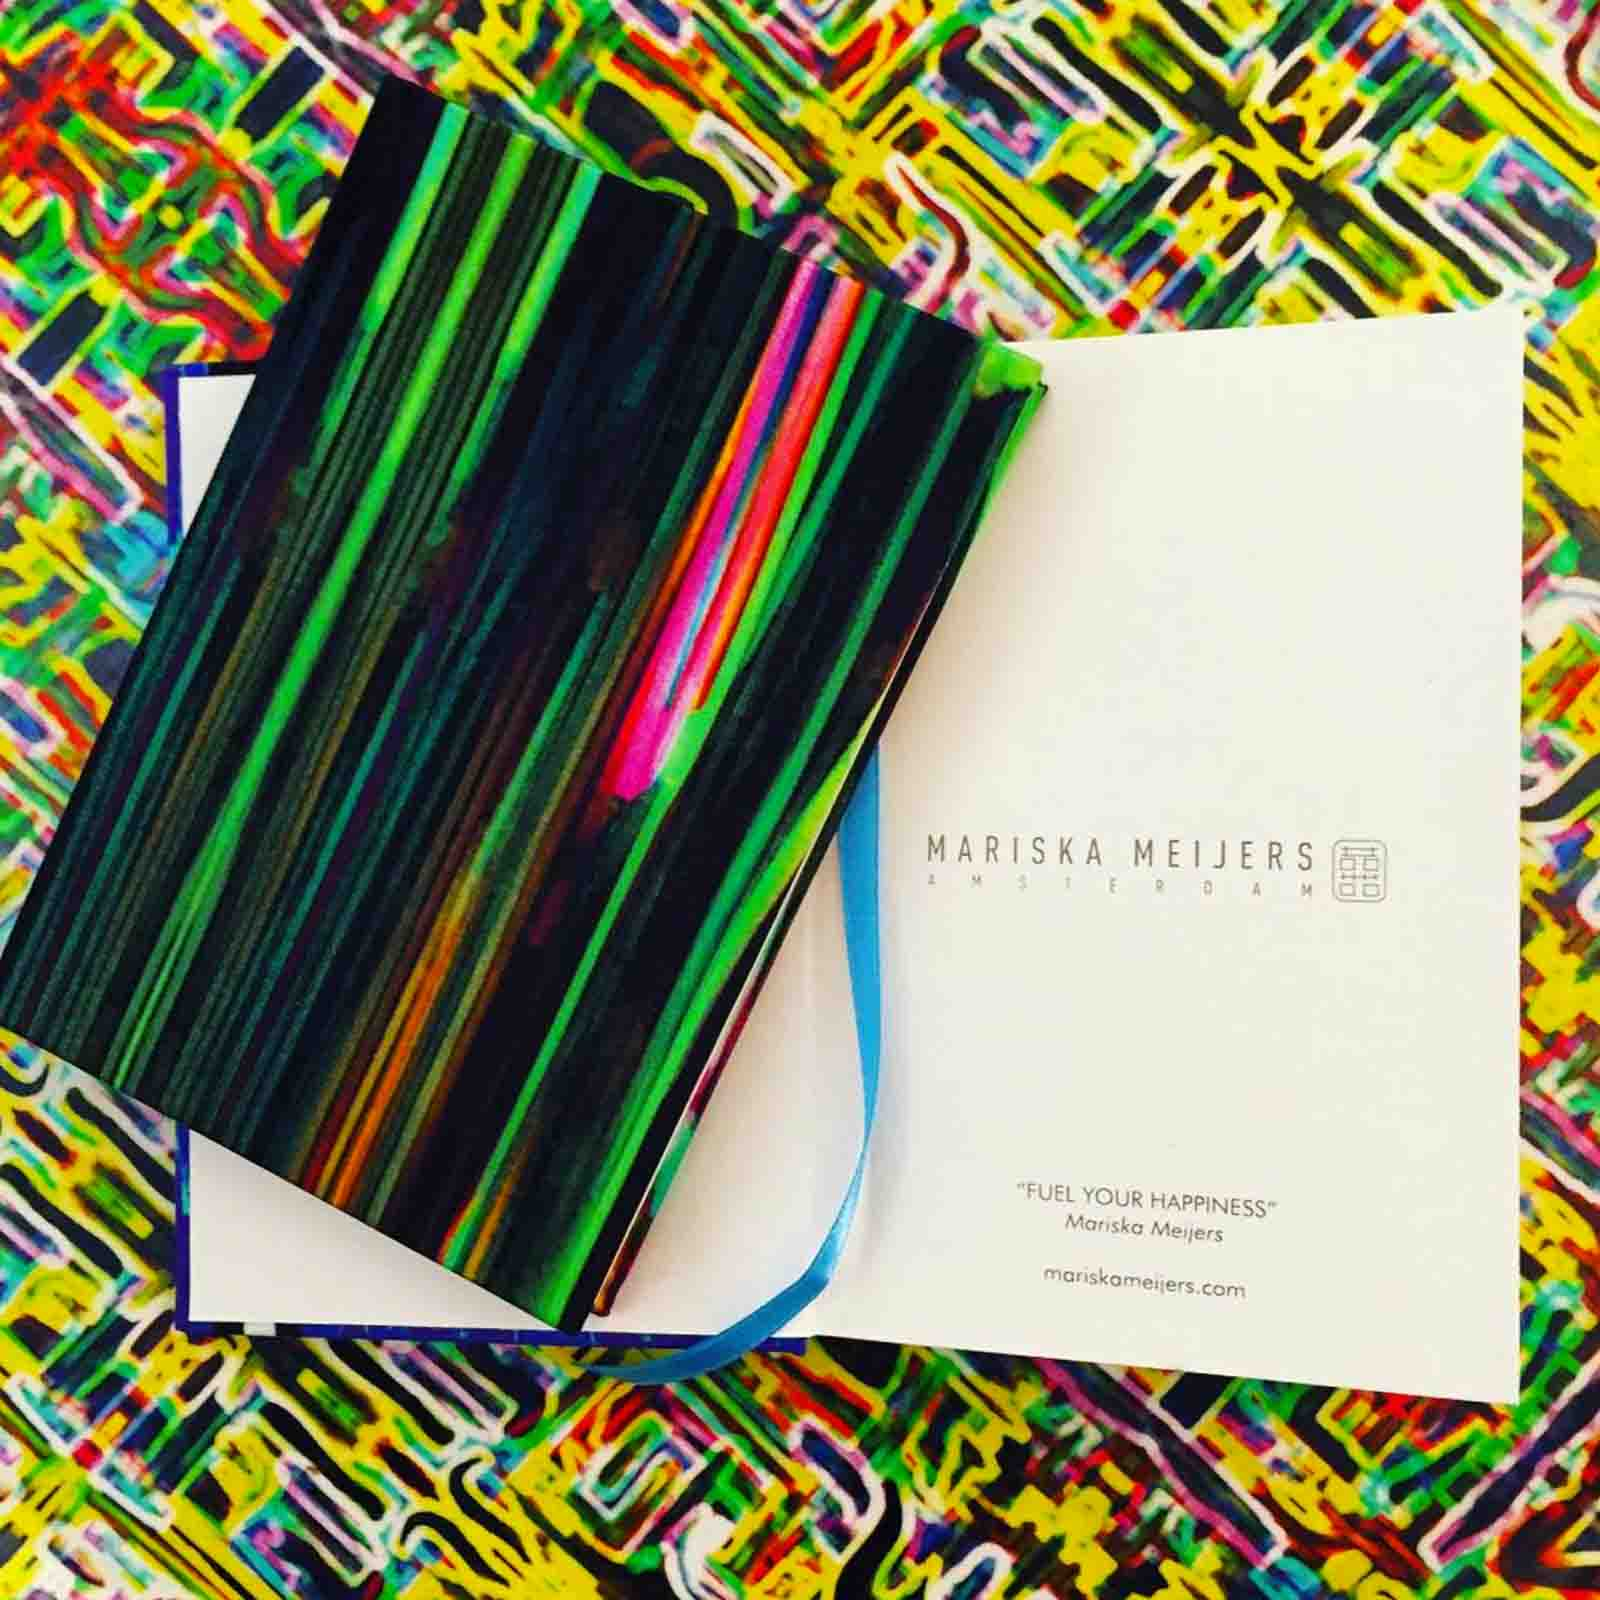 Mariska Meijers Notebook | Fuel your Happiness